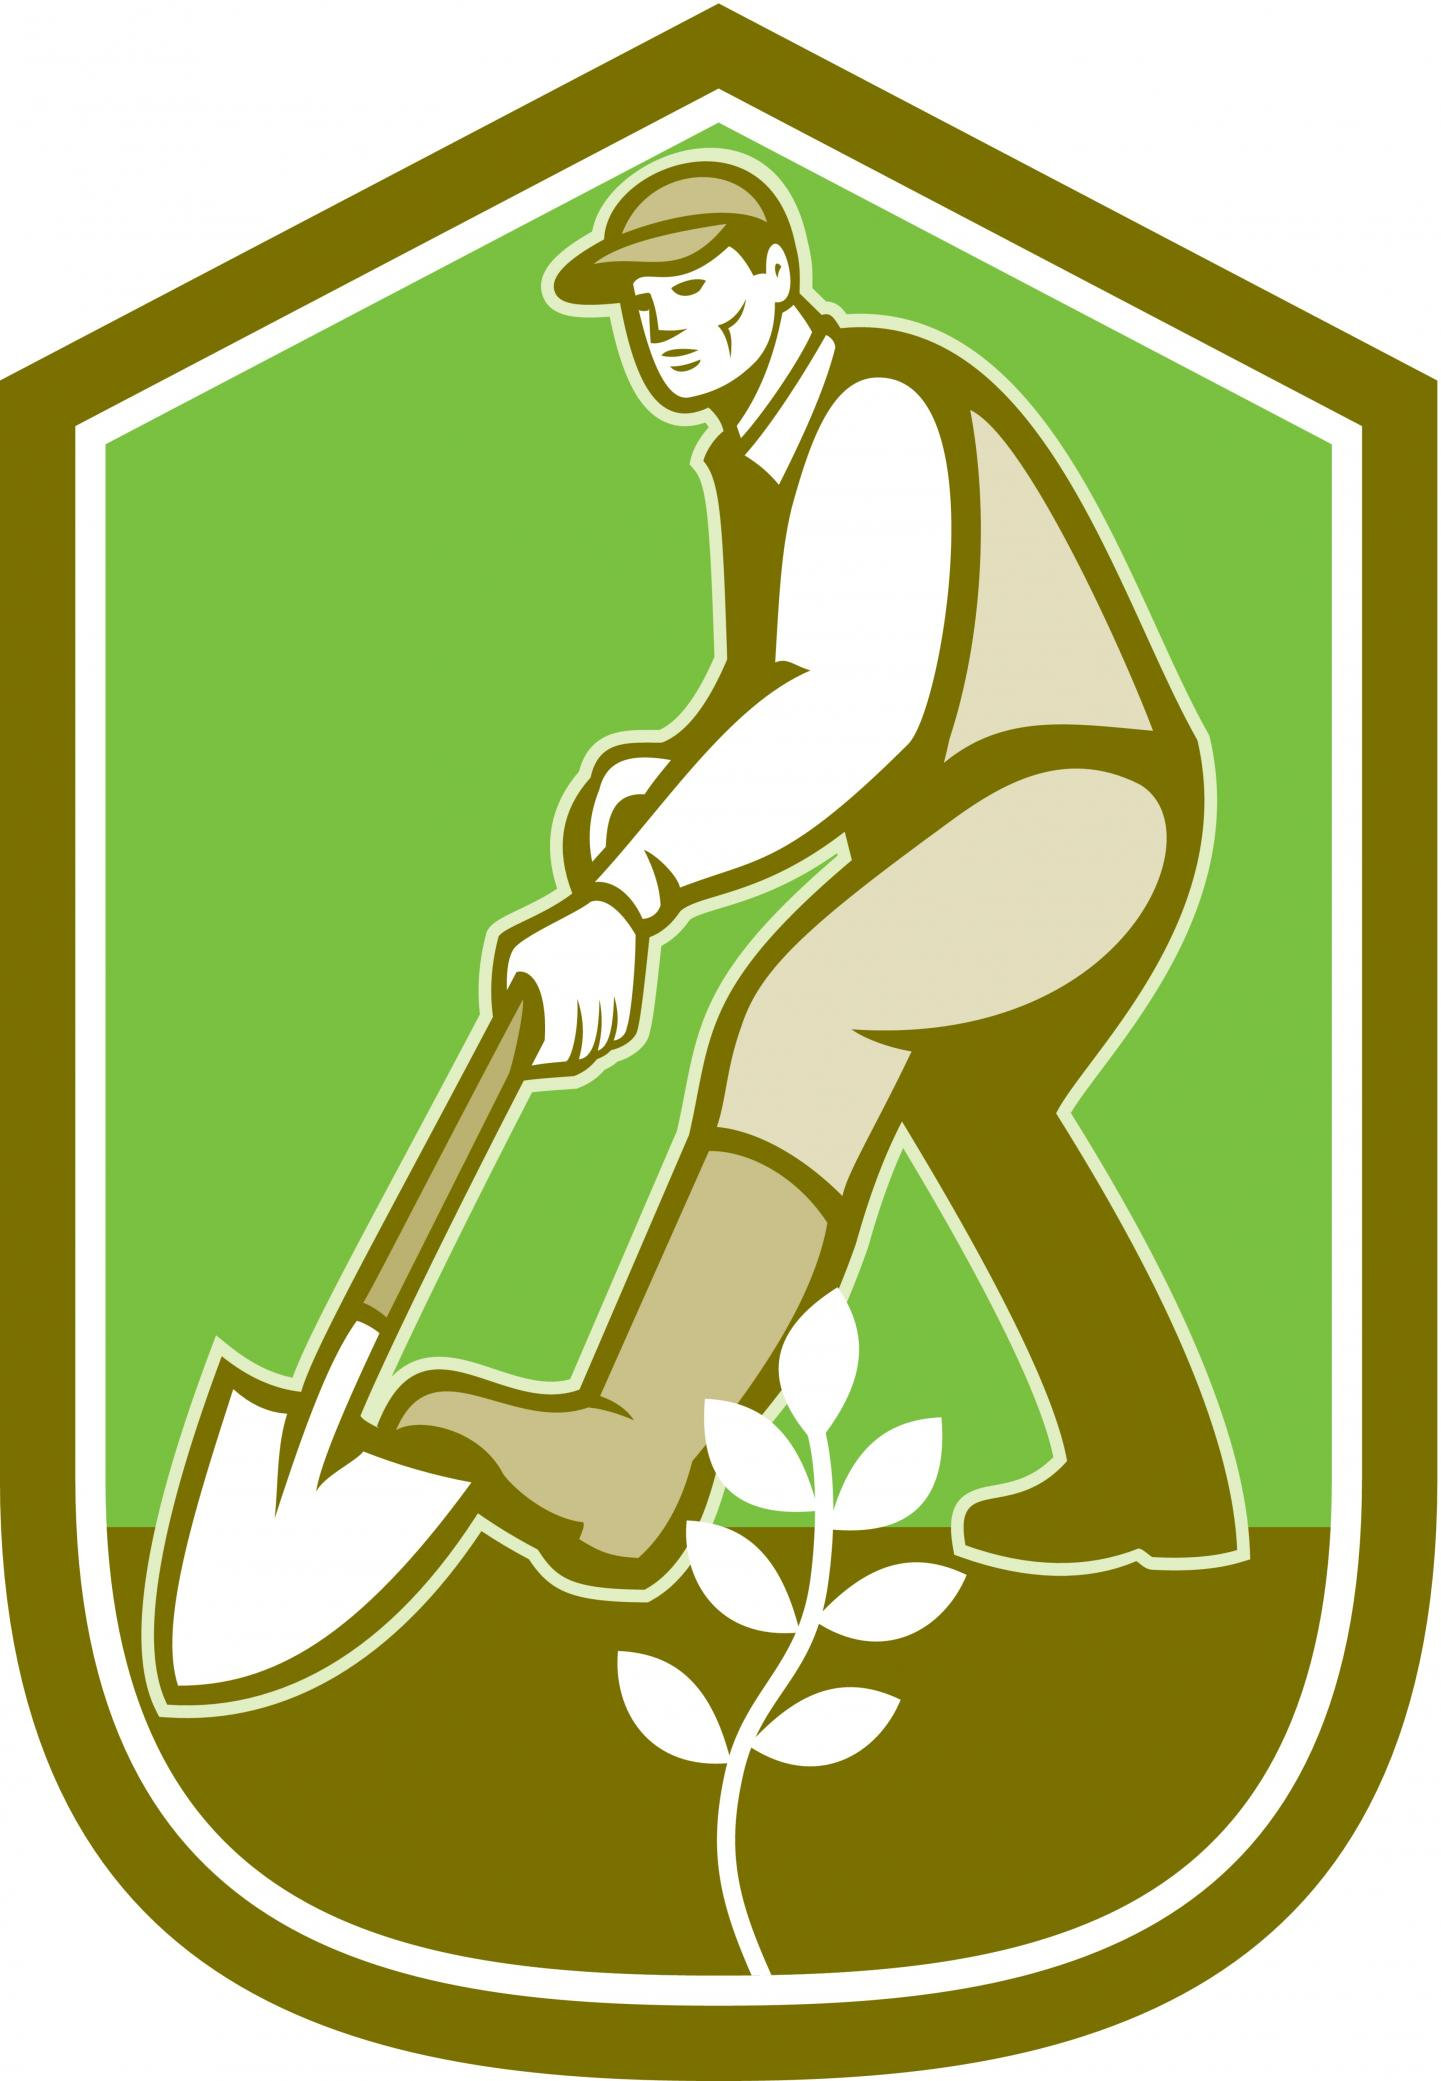 landscaper doing work logo